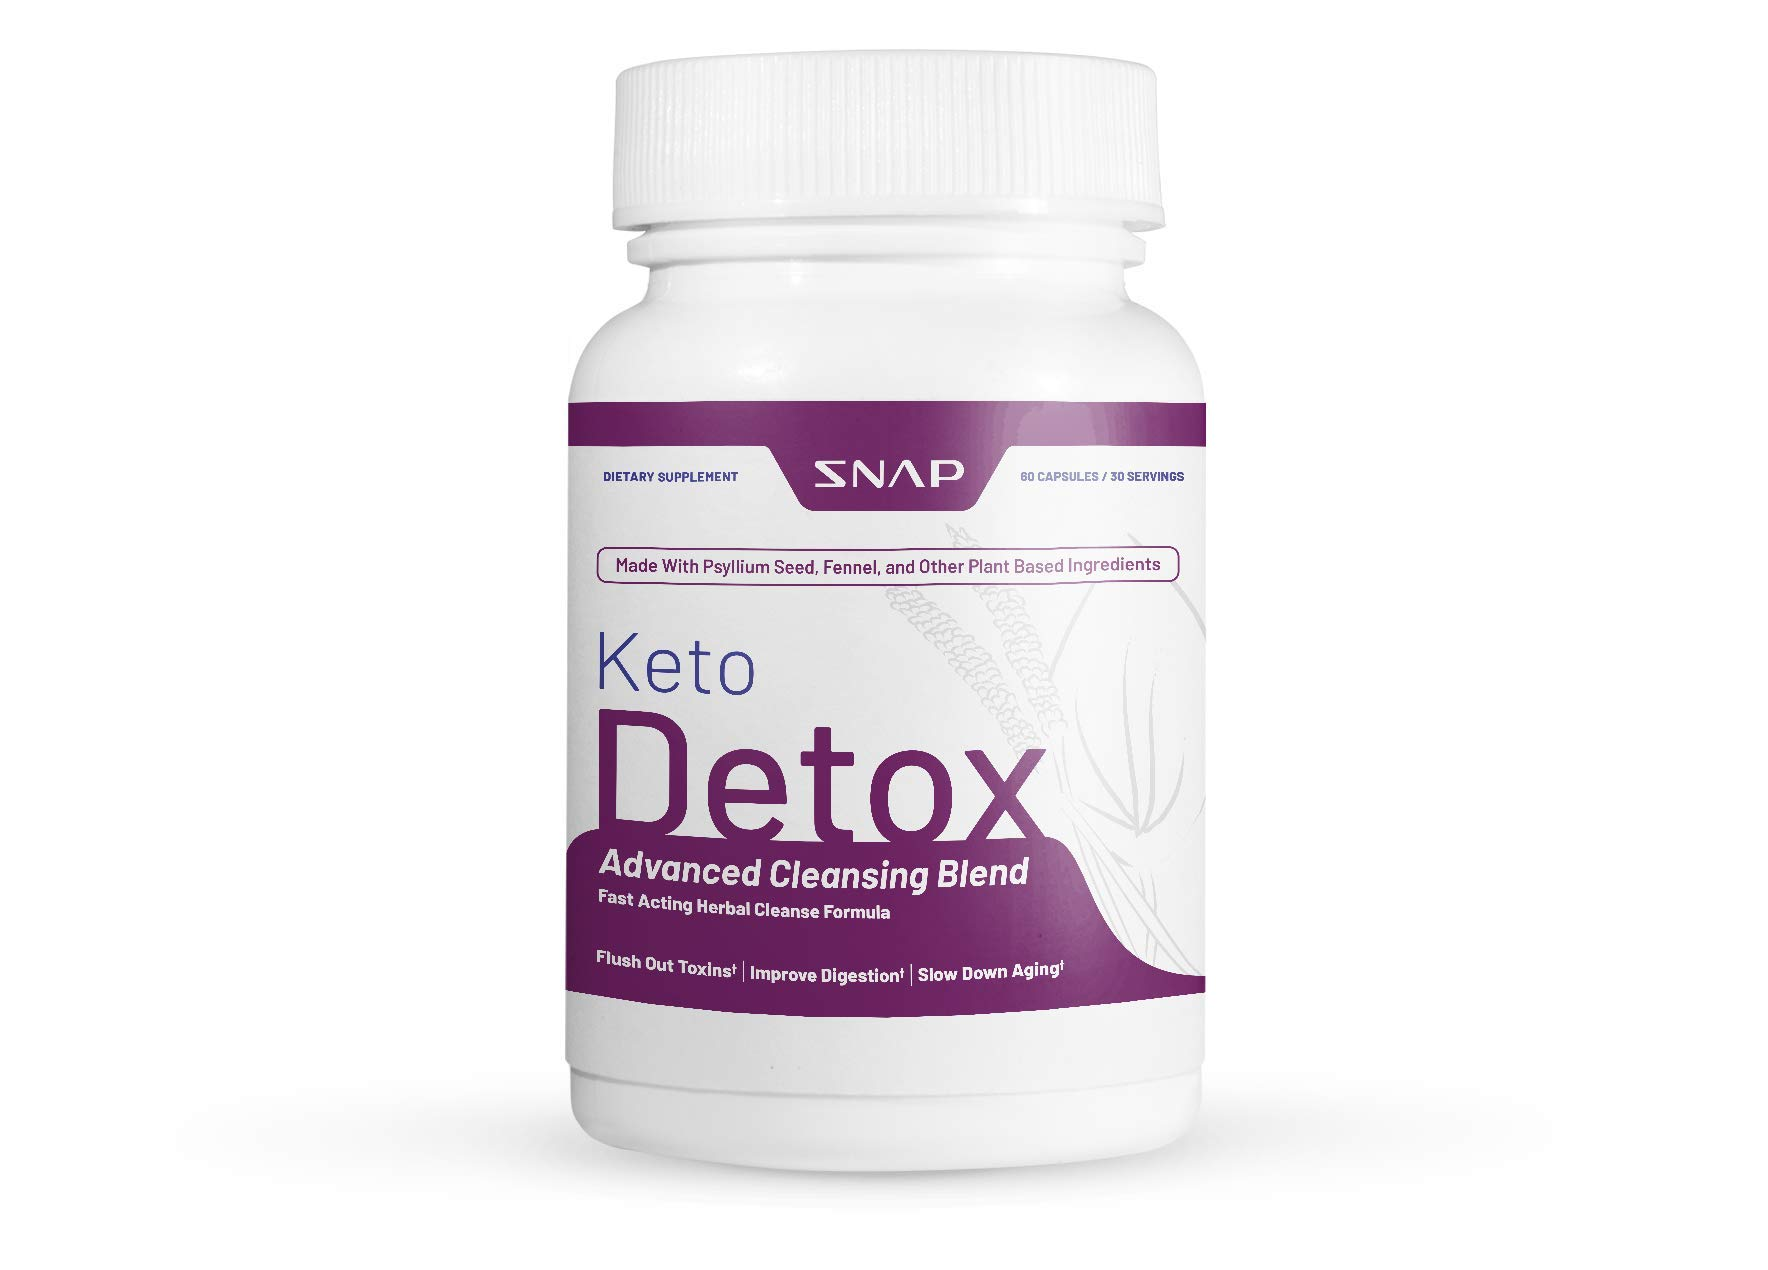 Keto Detox Advanced Cleansing Blend by Snap Supplements - 730mg Formula Flushes Out Toxins, Improves Digestion, Slows Aging - Keto Enzyme Complex for Digestion & Regularity on Keto Diet - 60 Capsules by Vital Khai